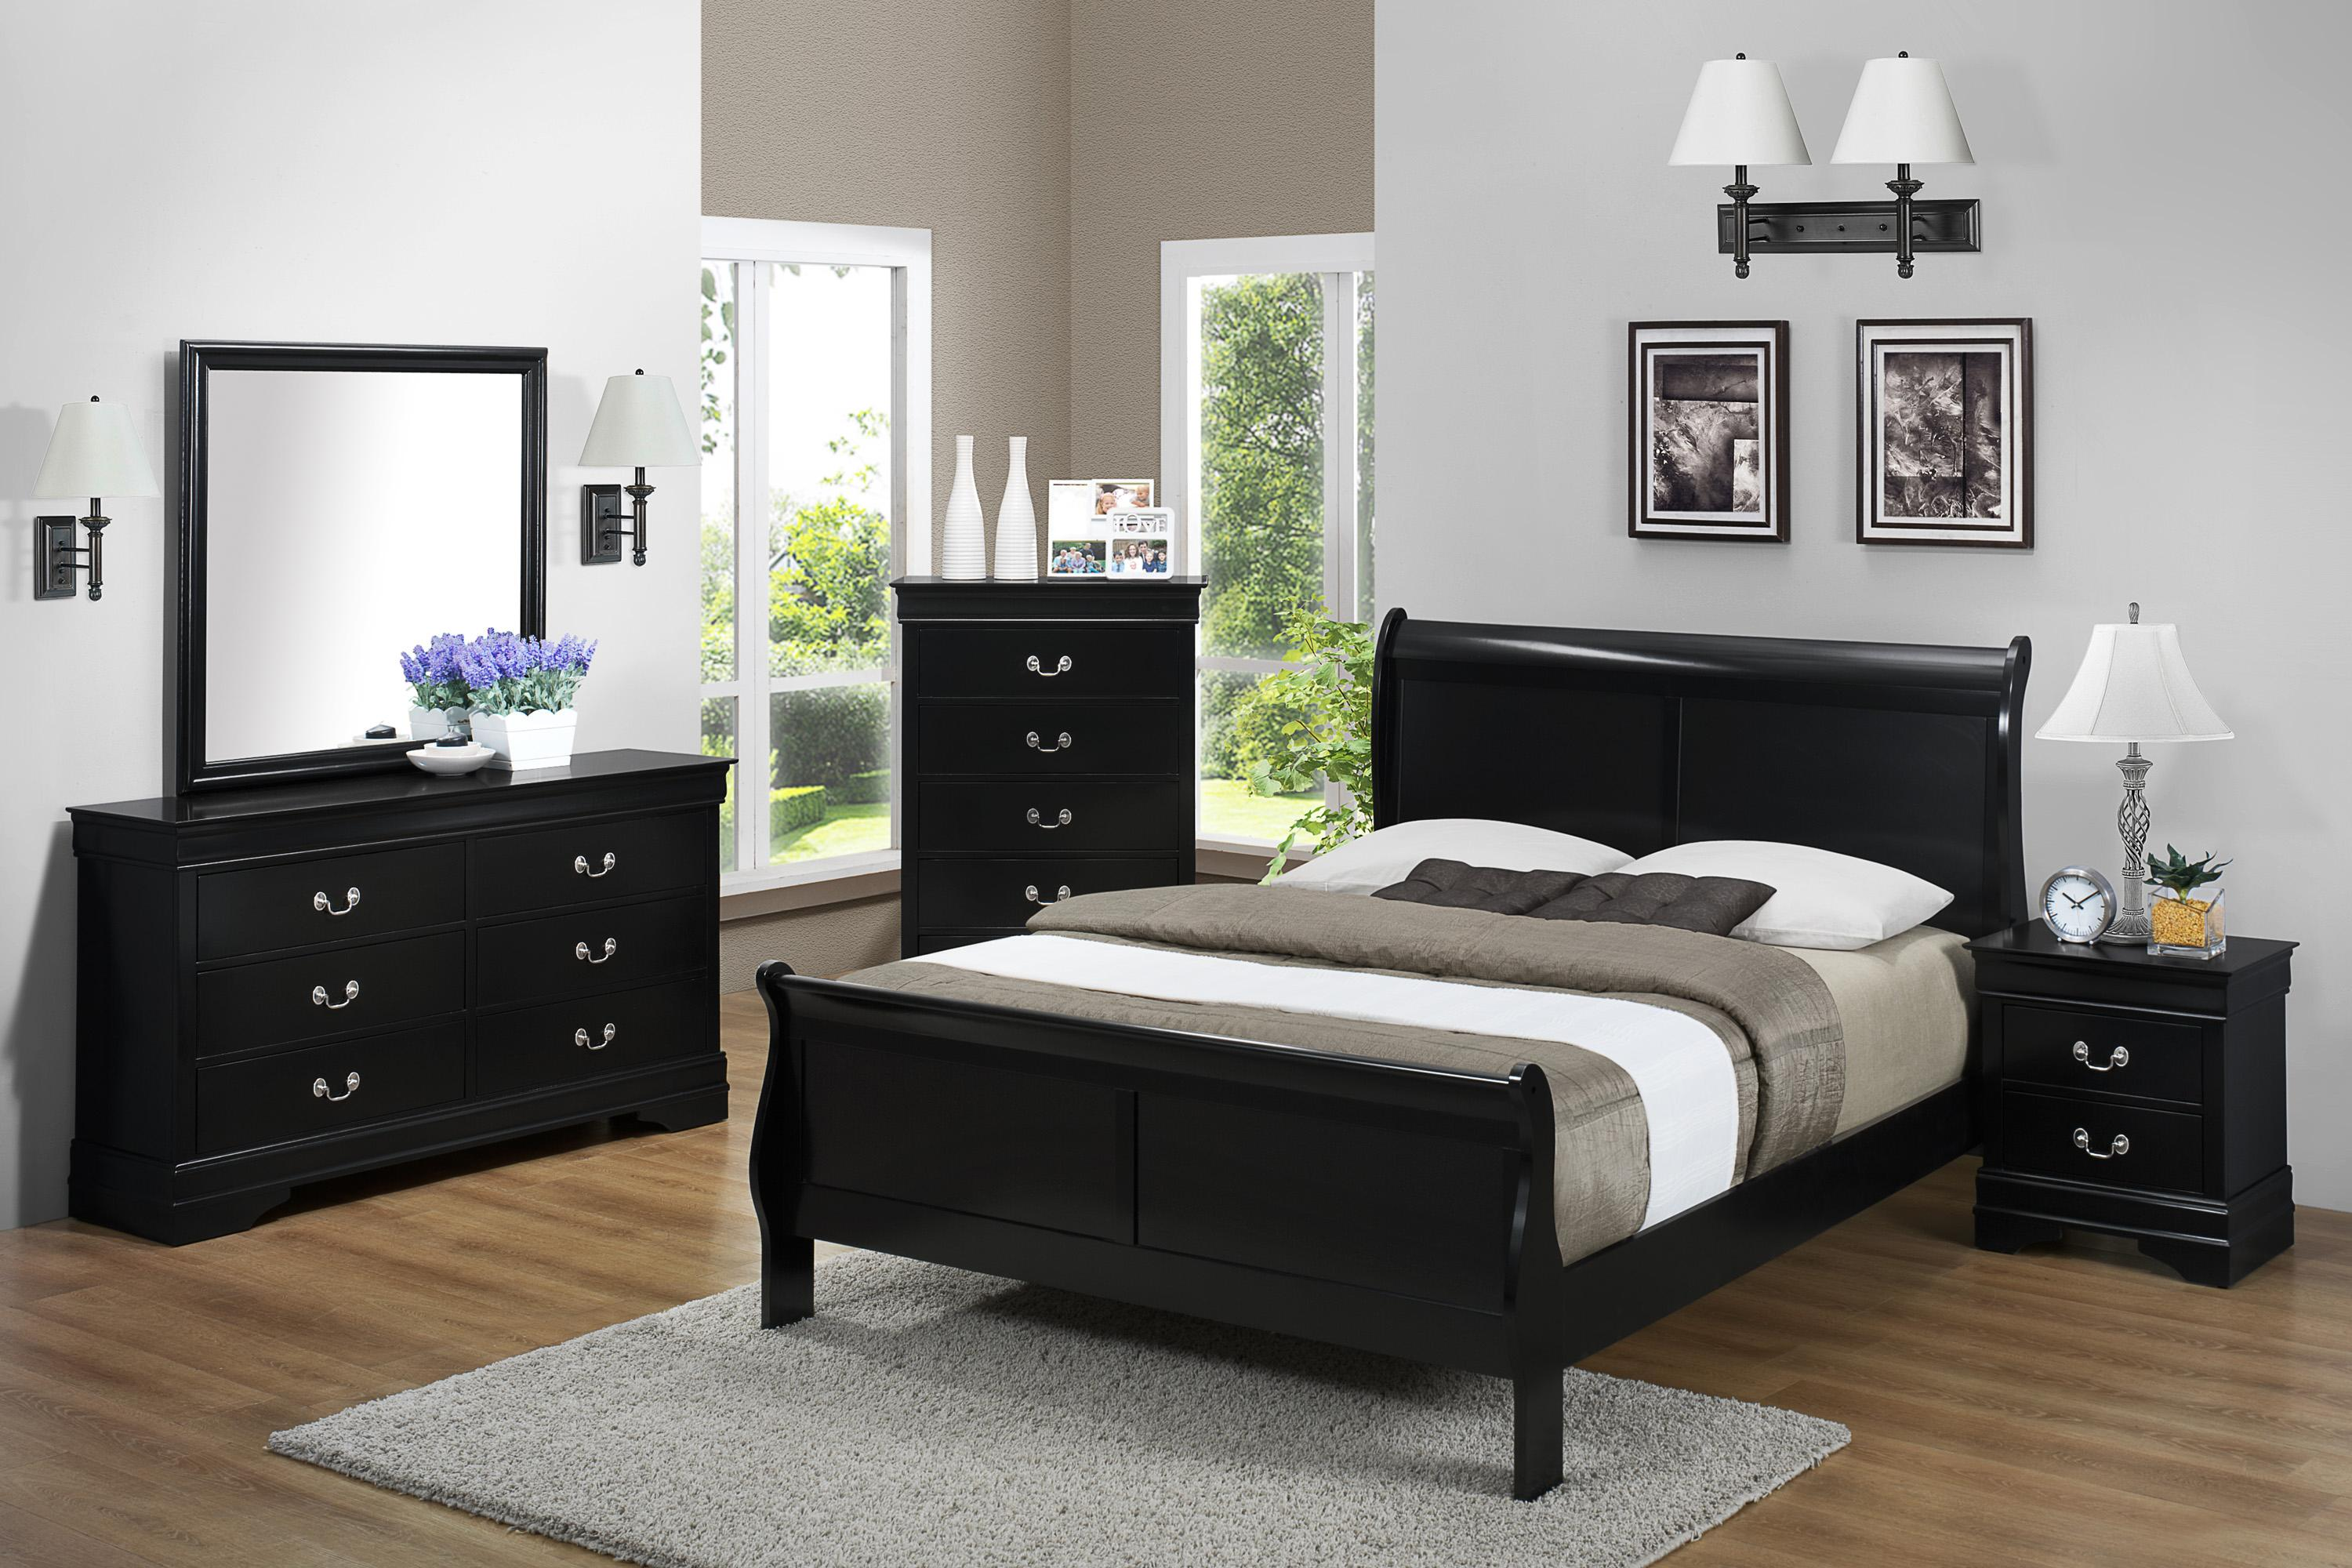 Crown Mark Louis Phillipe California King Bedroom Group - Item Number: B3900 CK Bedroom Group 1